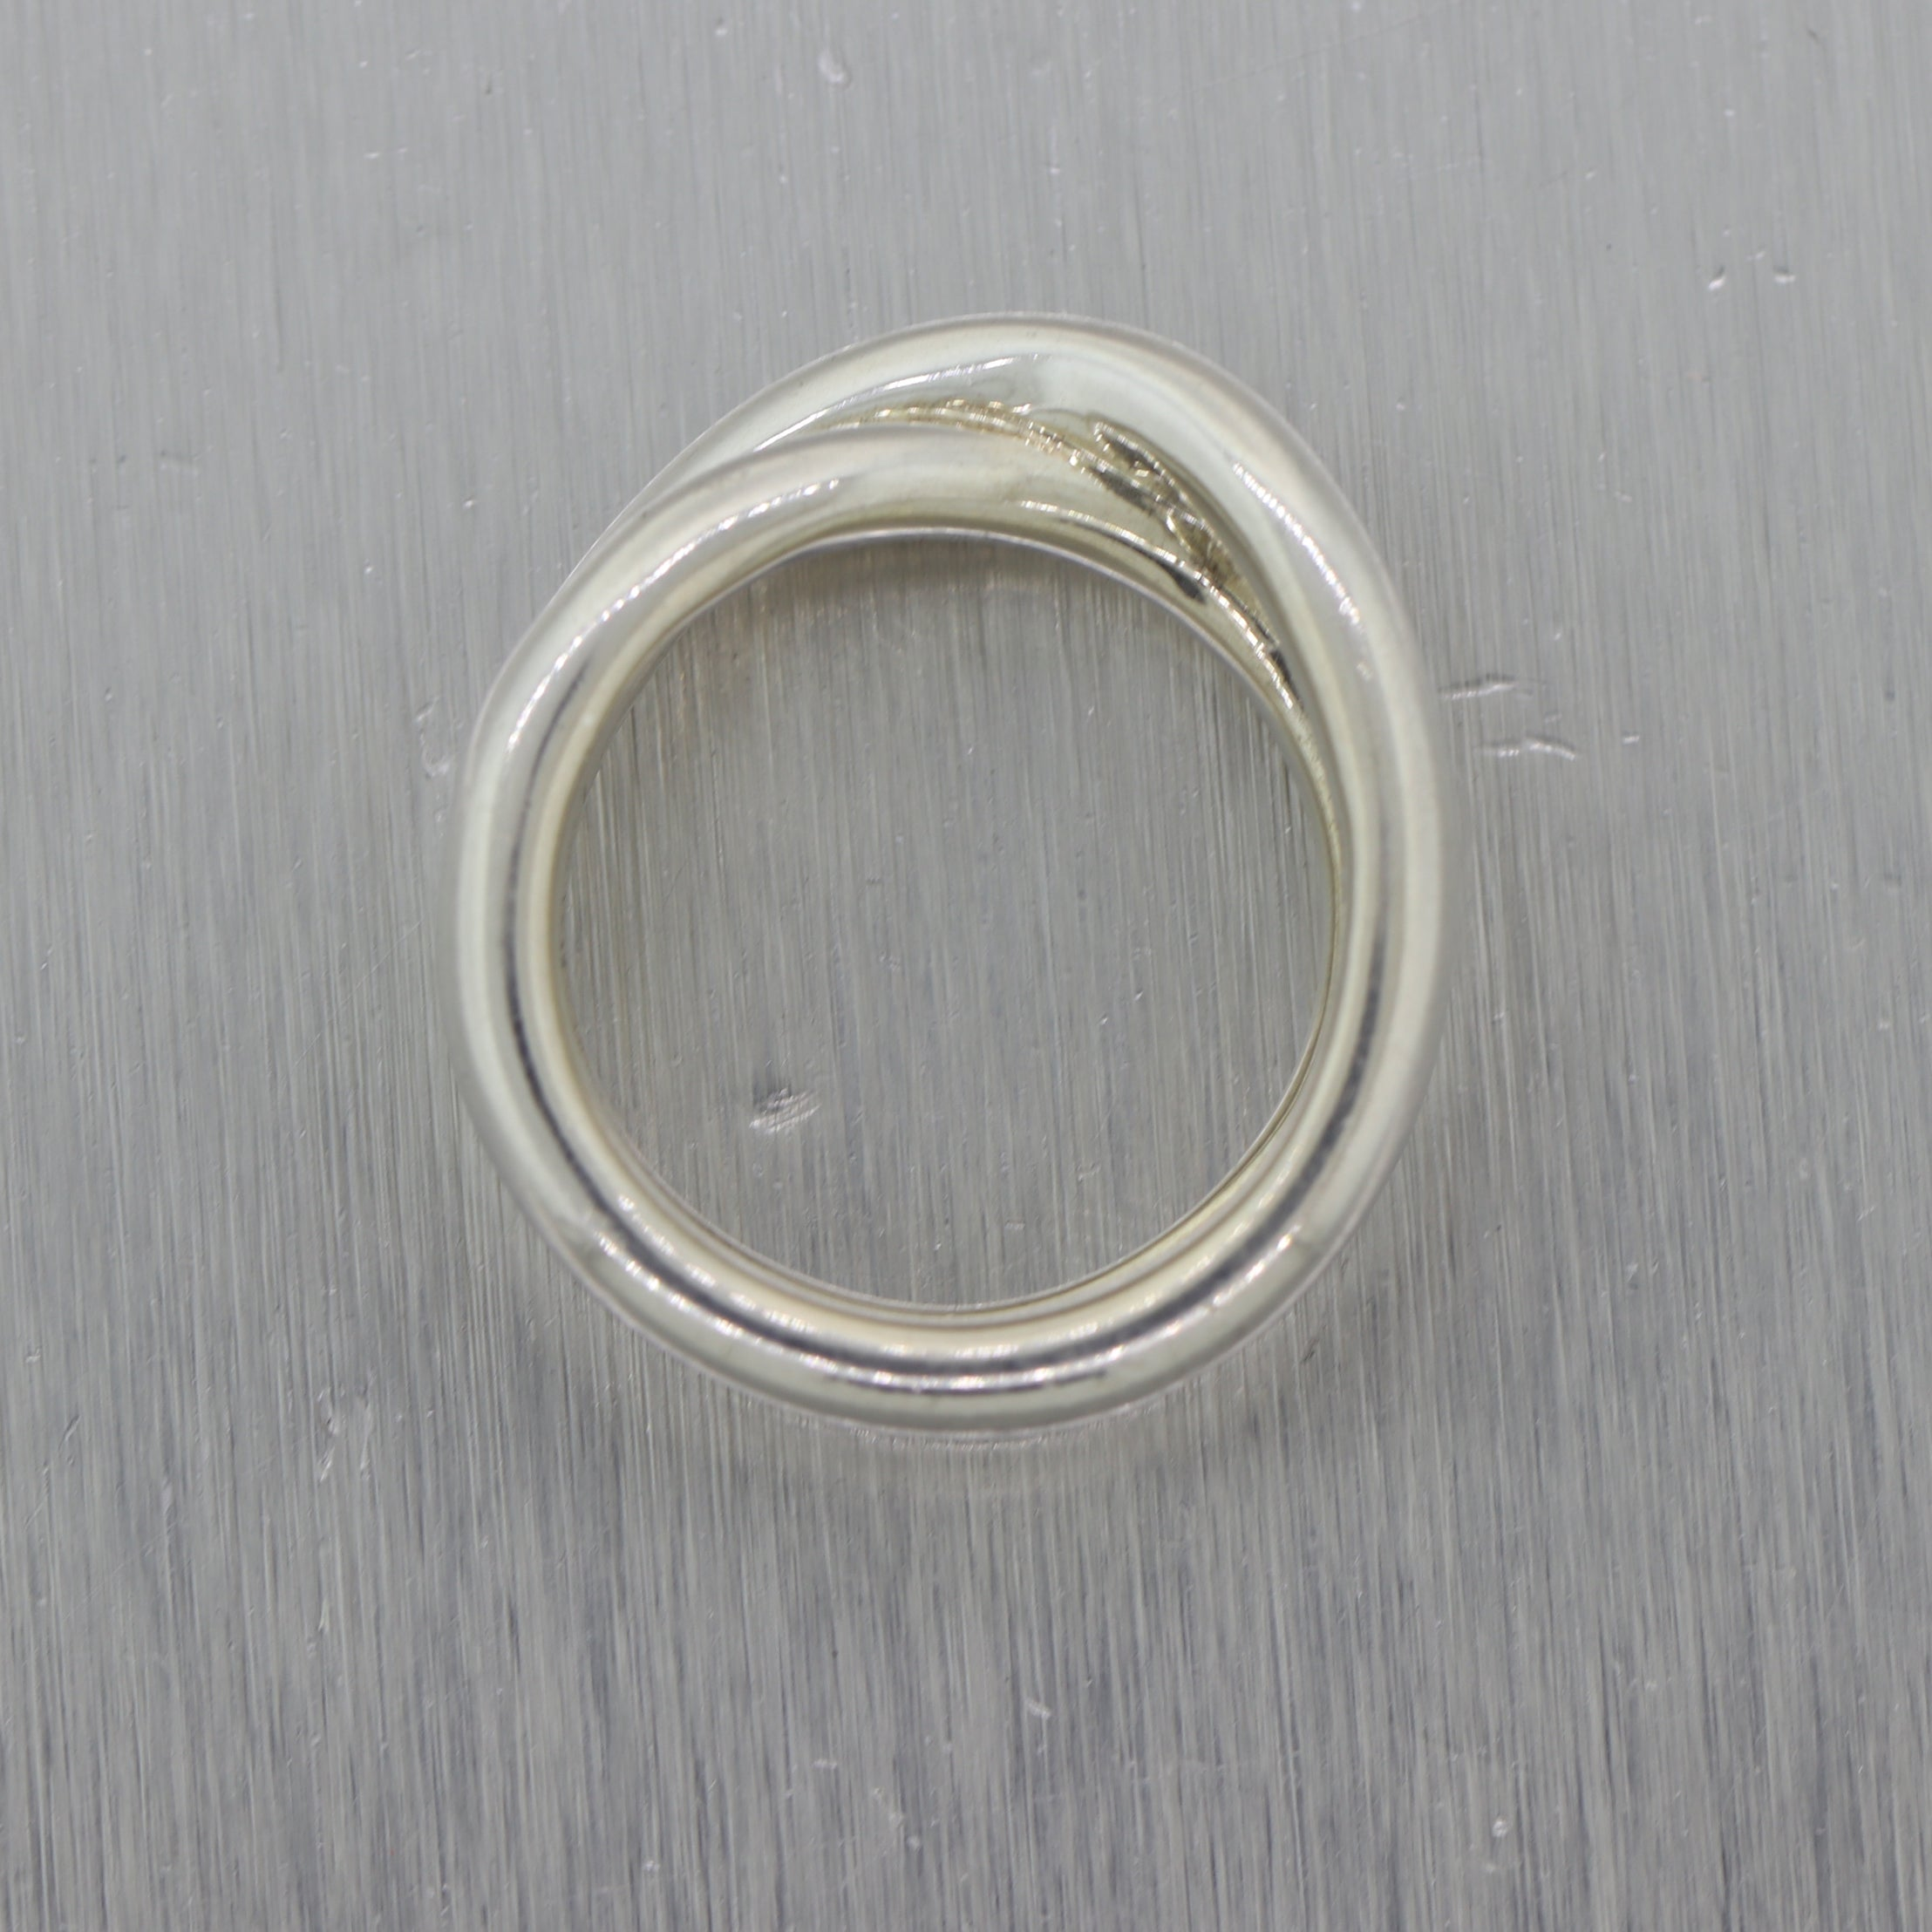 Tiffany & Co. Paloma Picasso Sterling Silver Le Cercle Band Ring